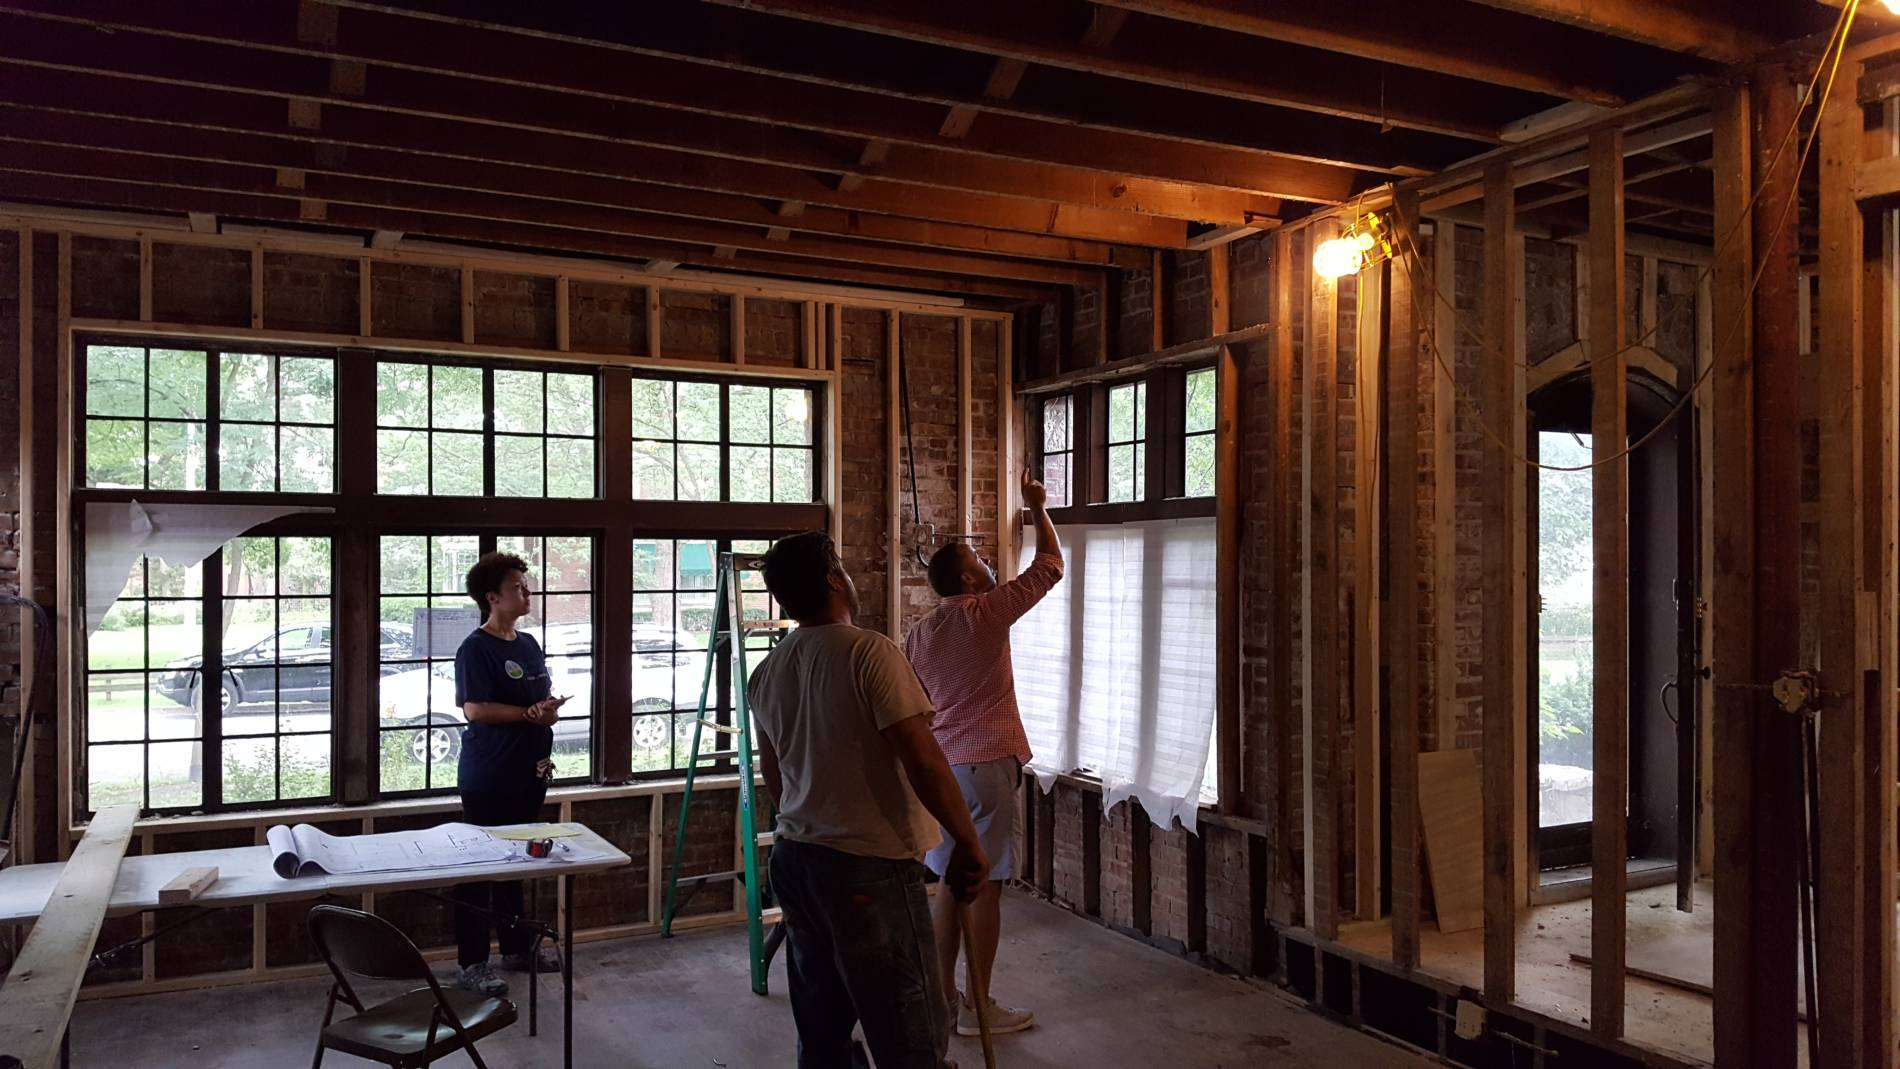 7-25-17 8854 S Hamilton Living Room Coffer Ceiling Layout